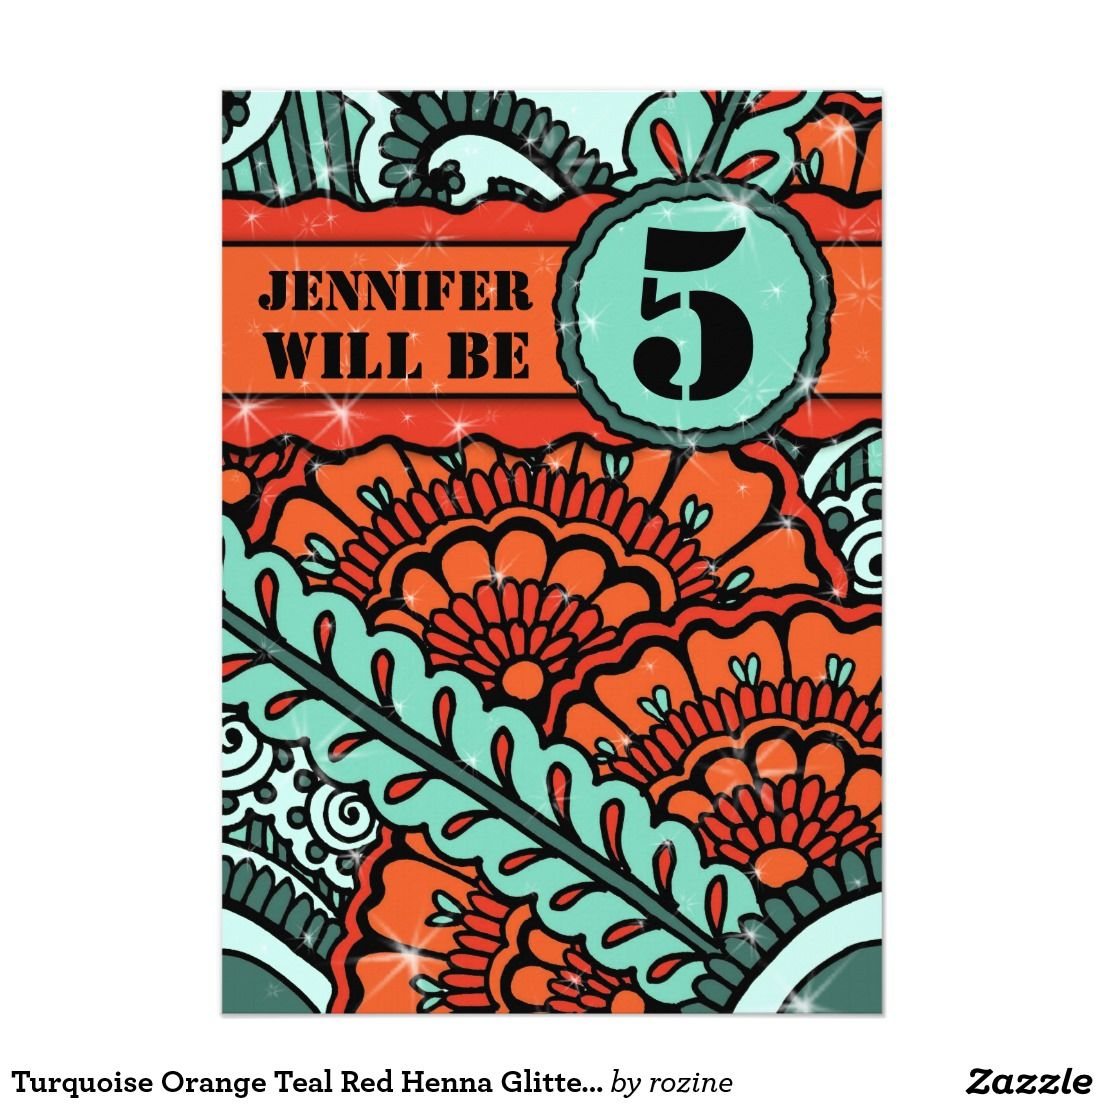 Turquoise Orange Teal Red Henna Glitter Birthday | Commercial Art by ...